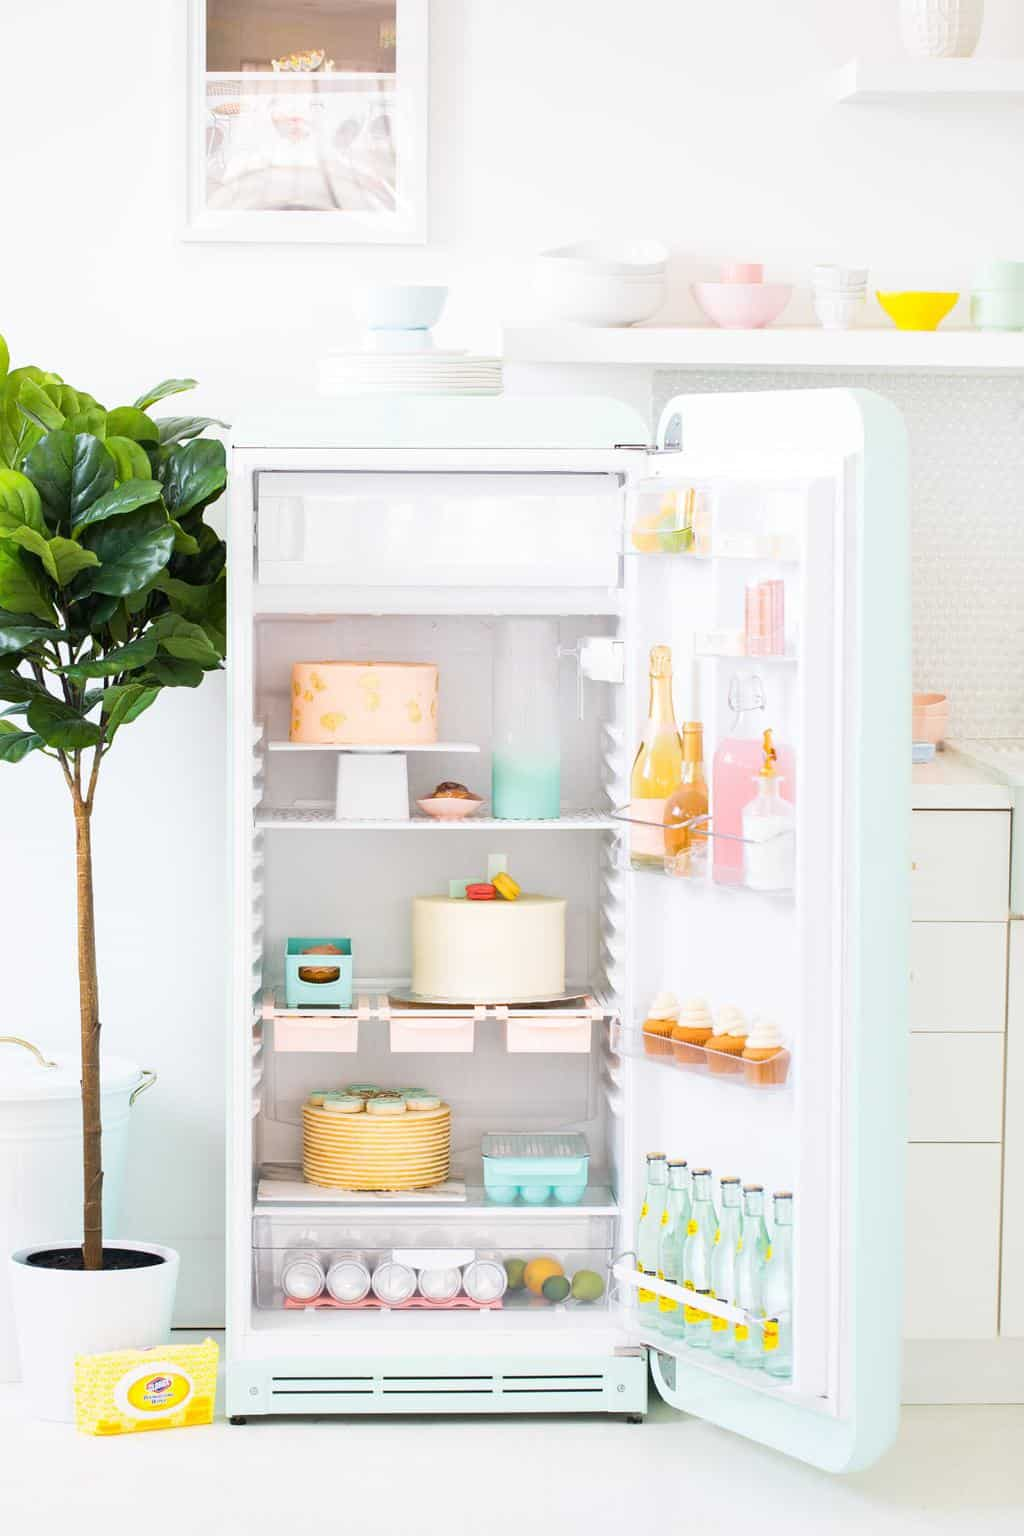 6 Oddly Satisfying Spring Refrigerator Cleaning Hacks by top Houston lifestyle Blogger Ashley Rose of Sugar & Cloth